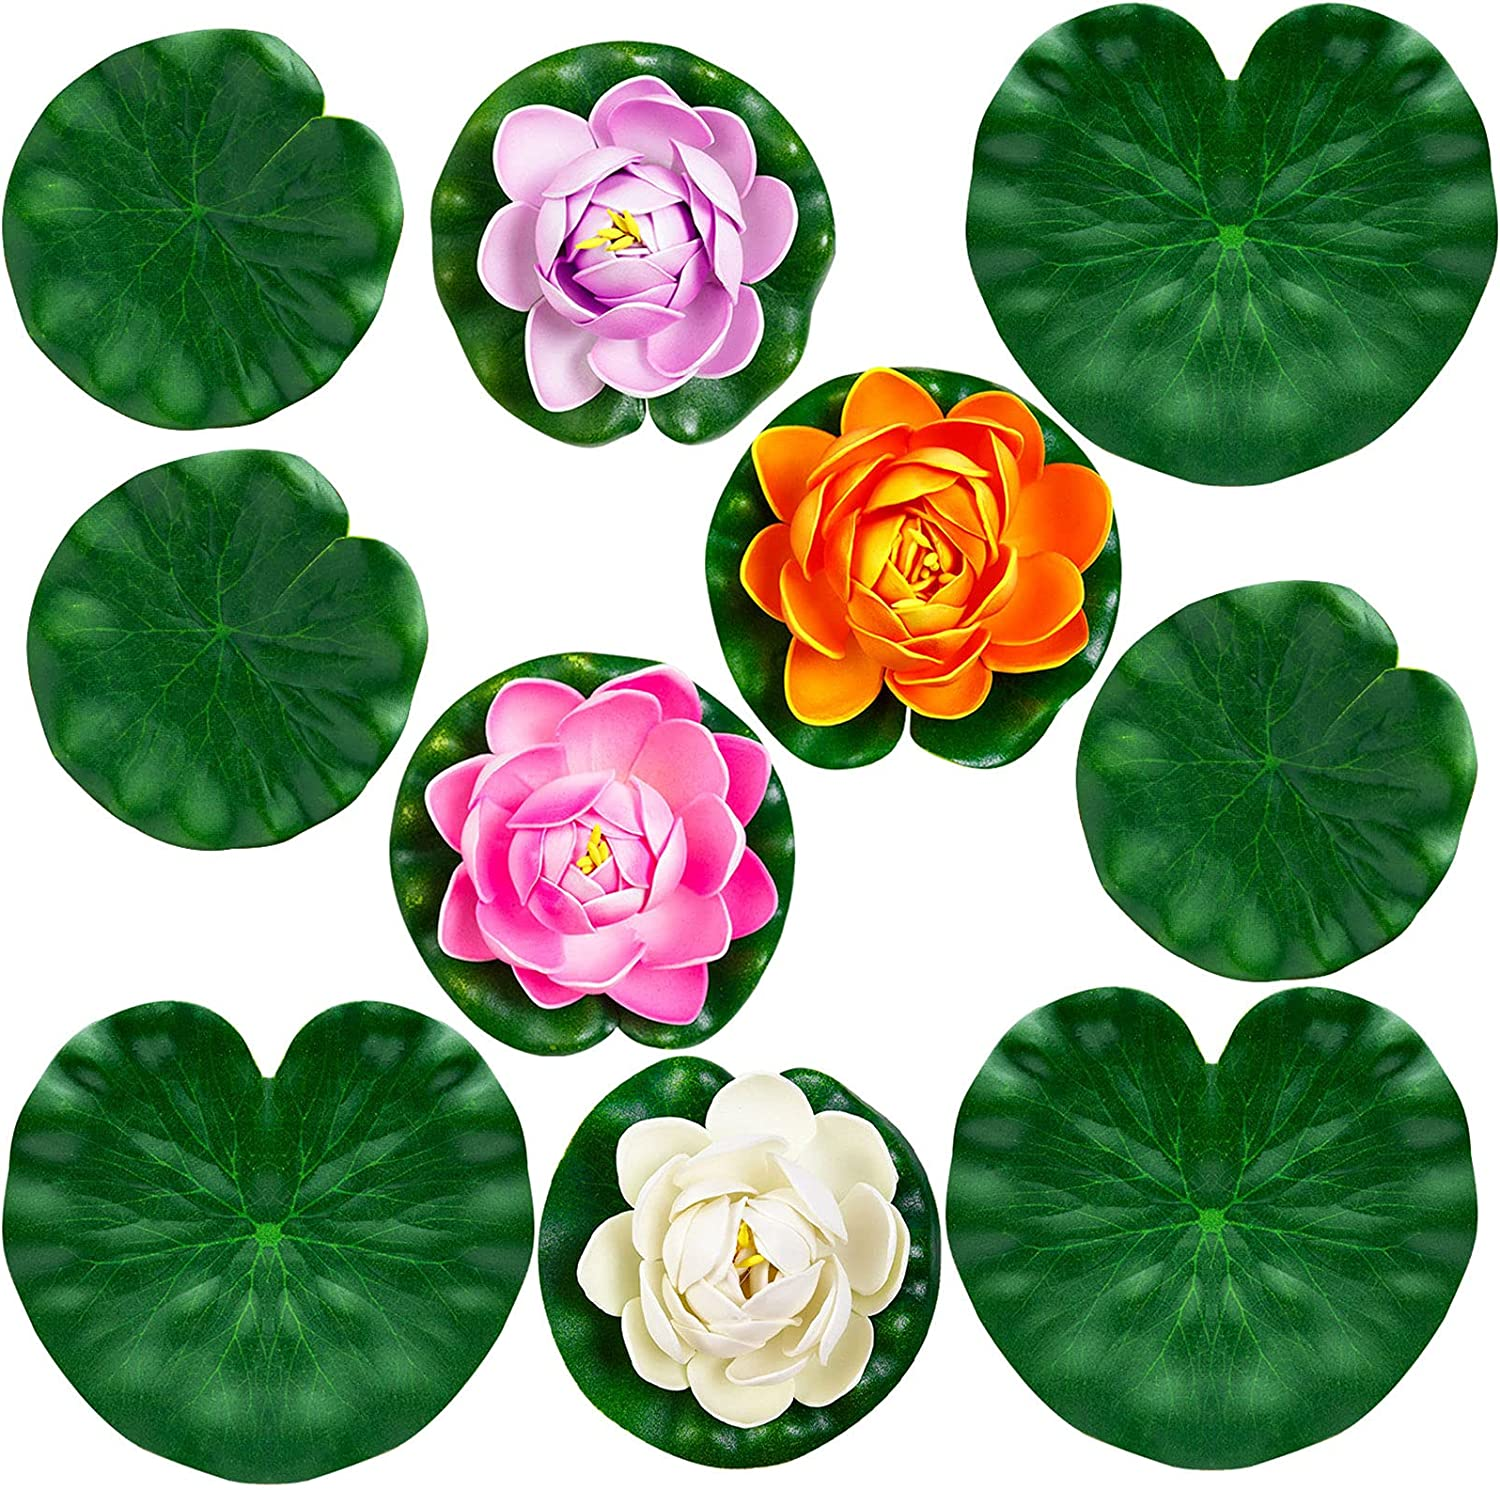 10Pcs Artificial Lotus and Lily Pads for Ponds, Artificial Floating Foam Lotus Flower Realistic Water Lily Pads Leaves for Garden Koi Fish Pond Aquarium Pool Wedding Decor